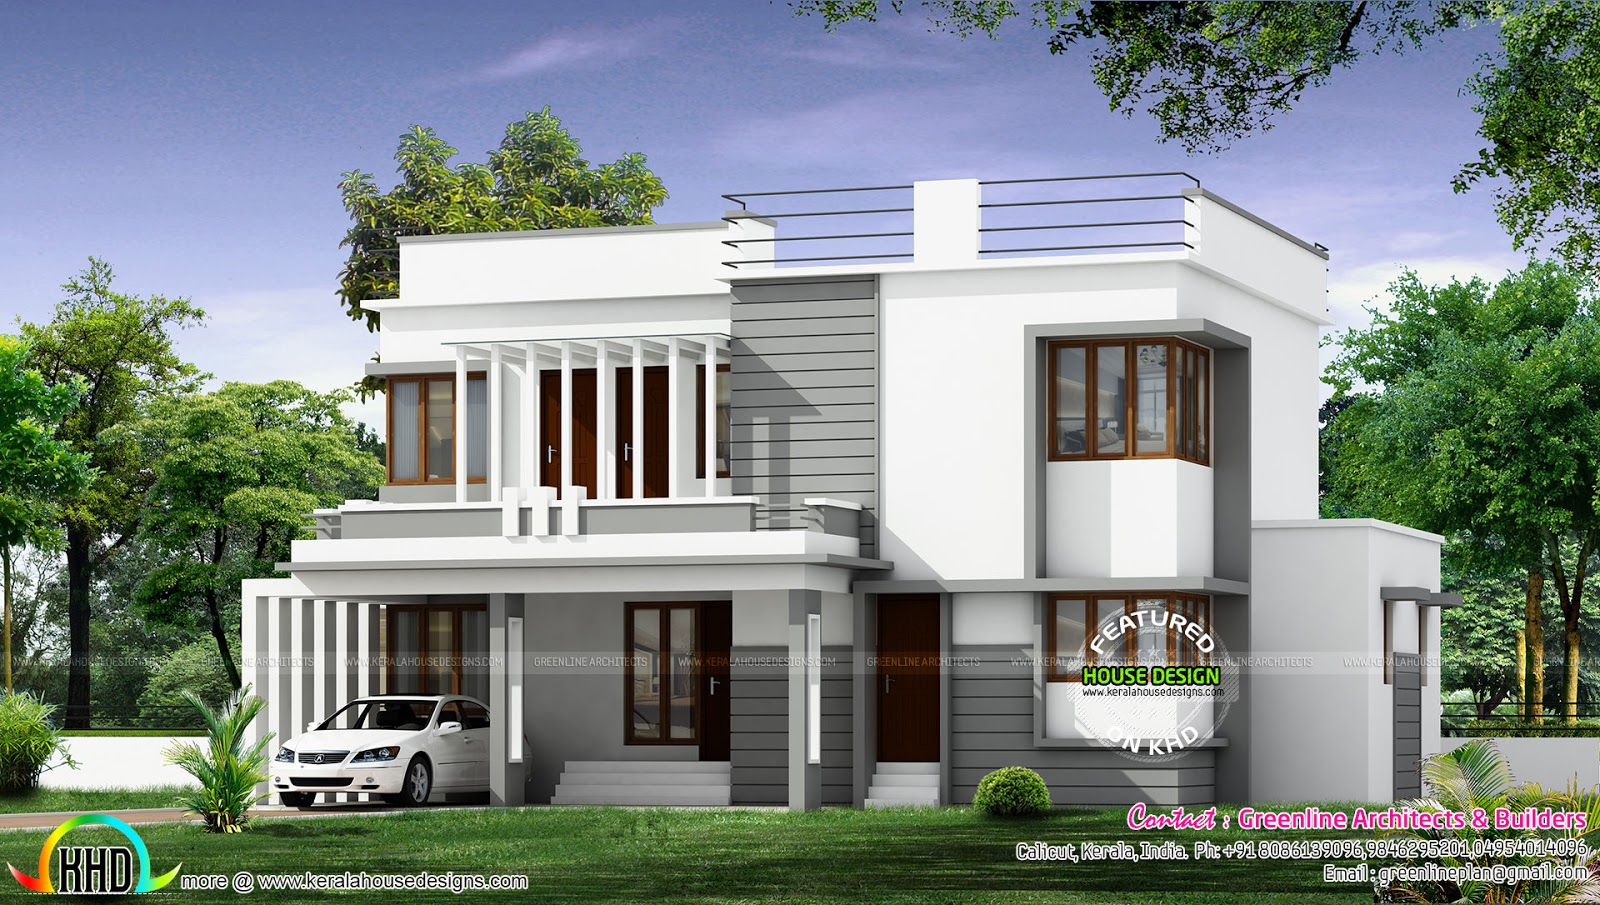 New modern house architecture kerala home design and for House gallery design